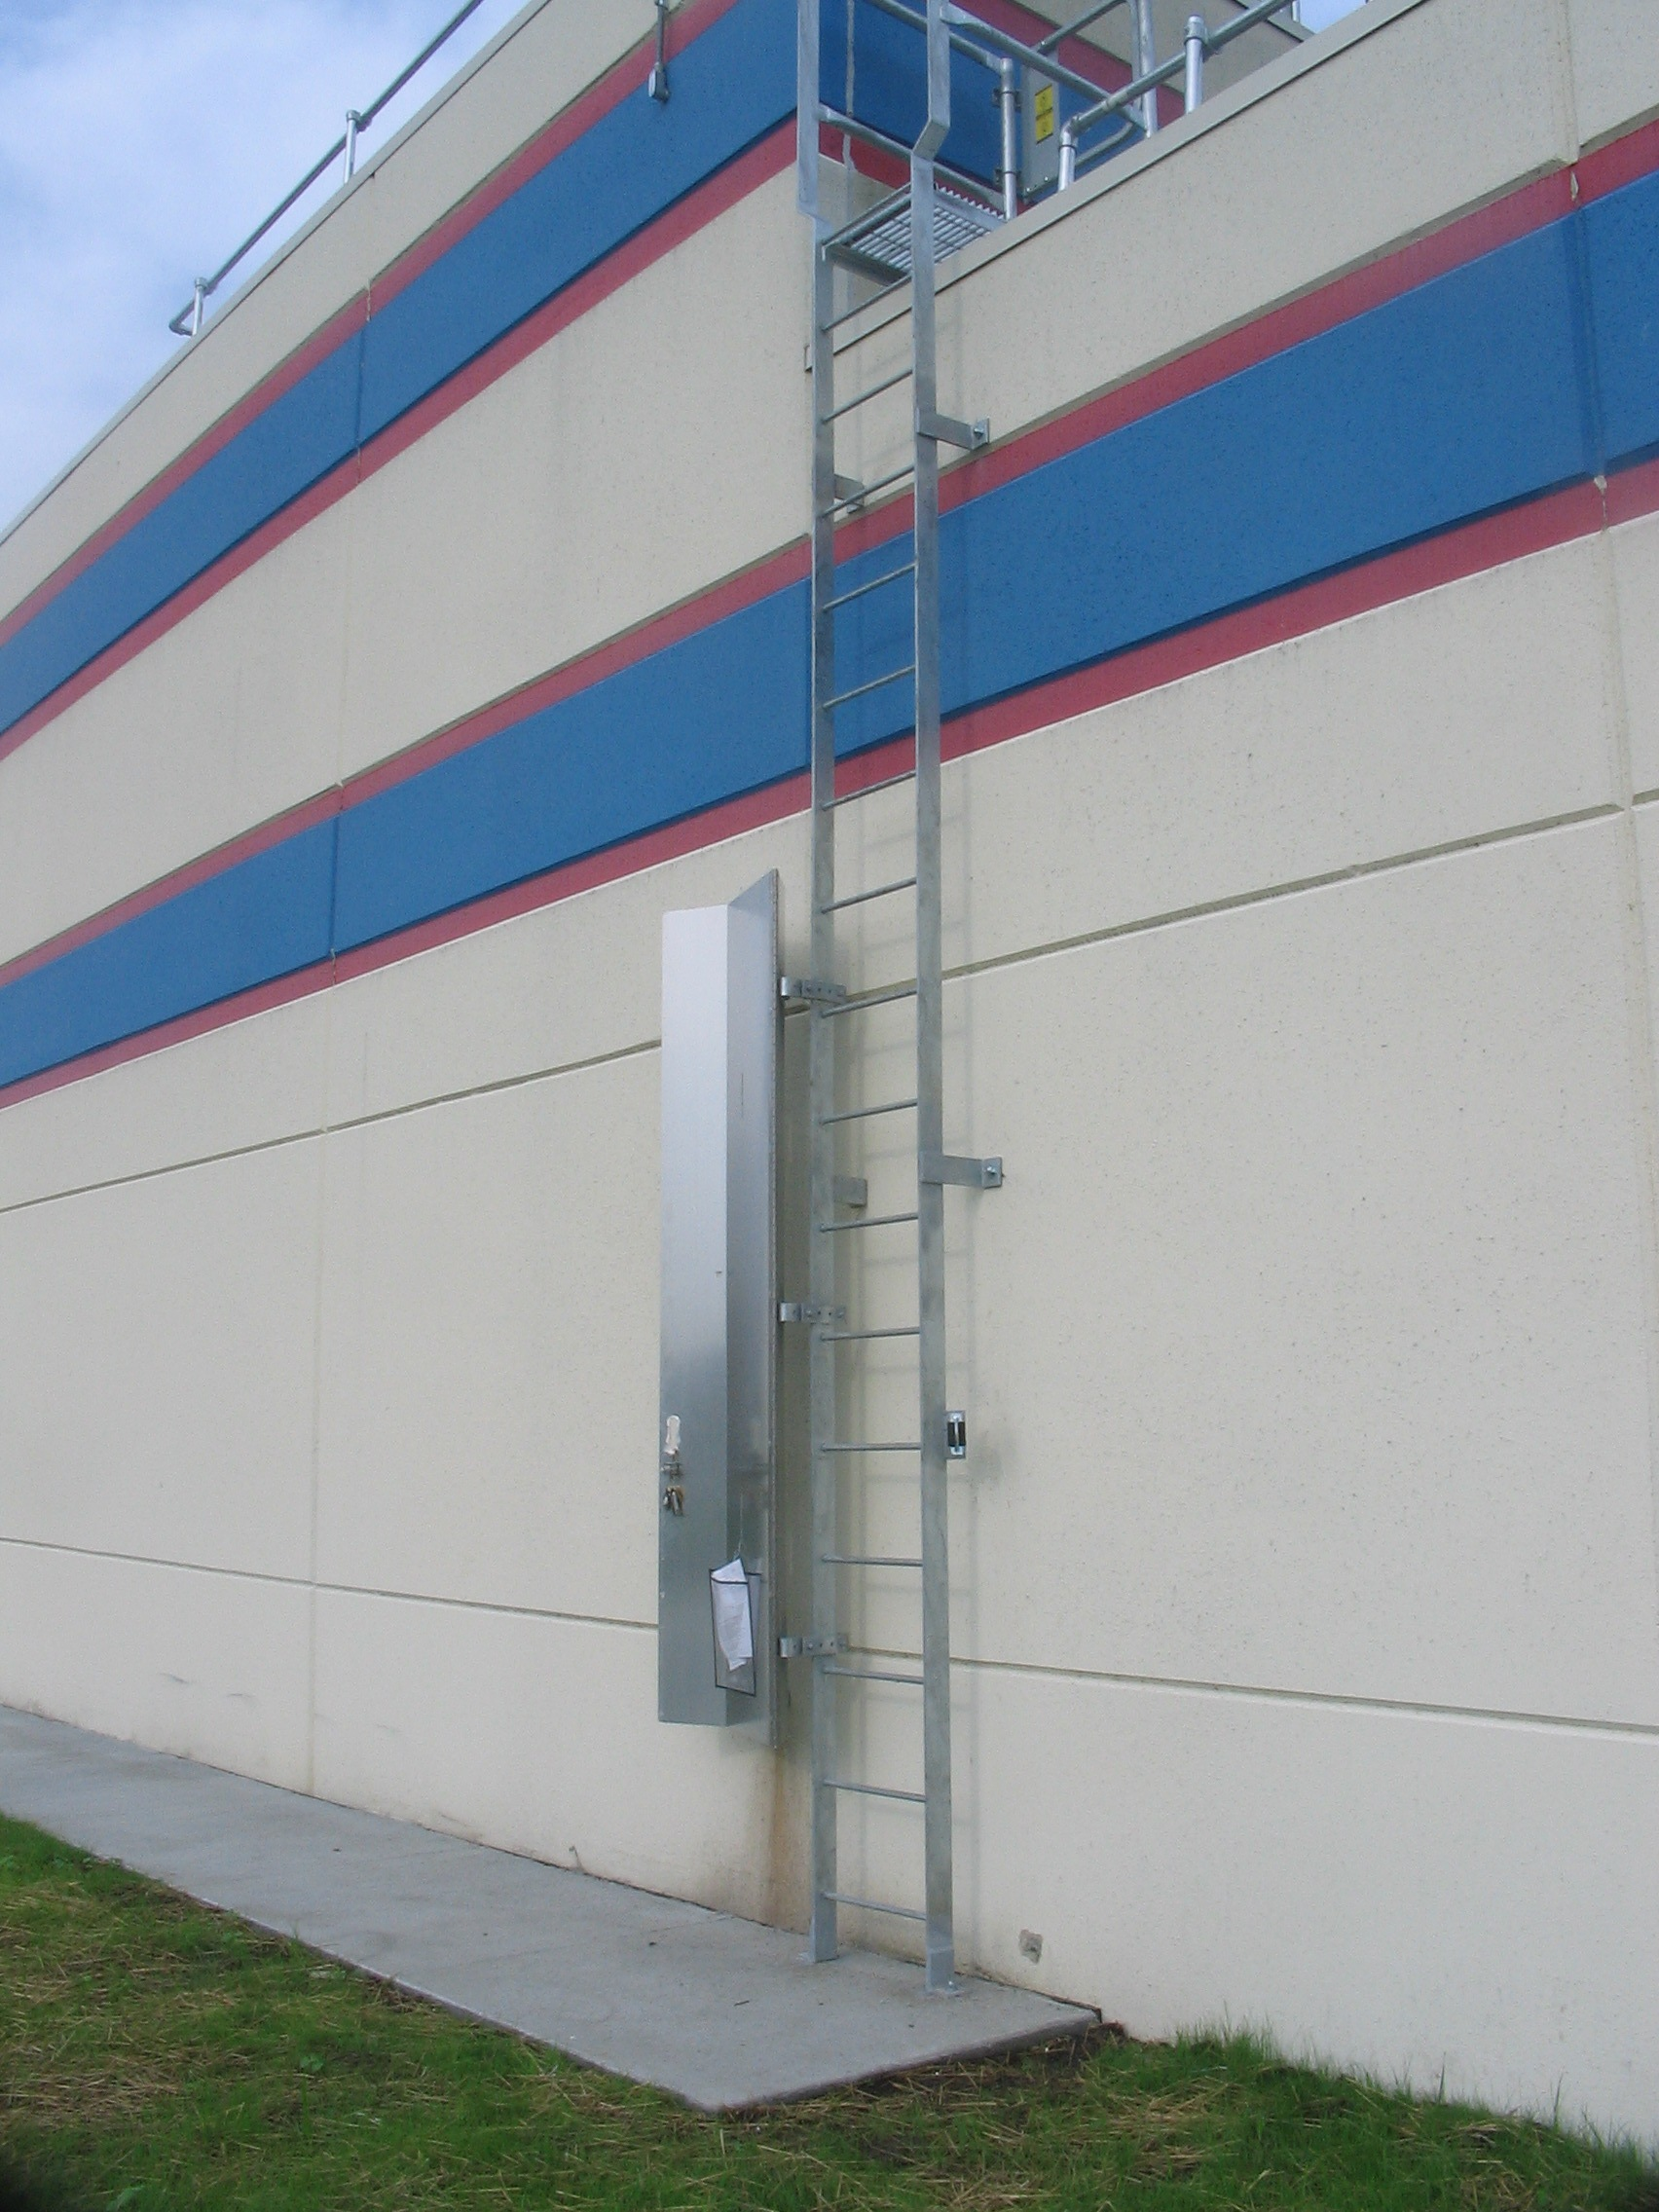 Are Your Fixed Ladders Compliant With New Osha Regulations